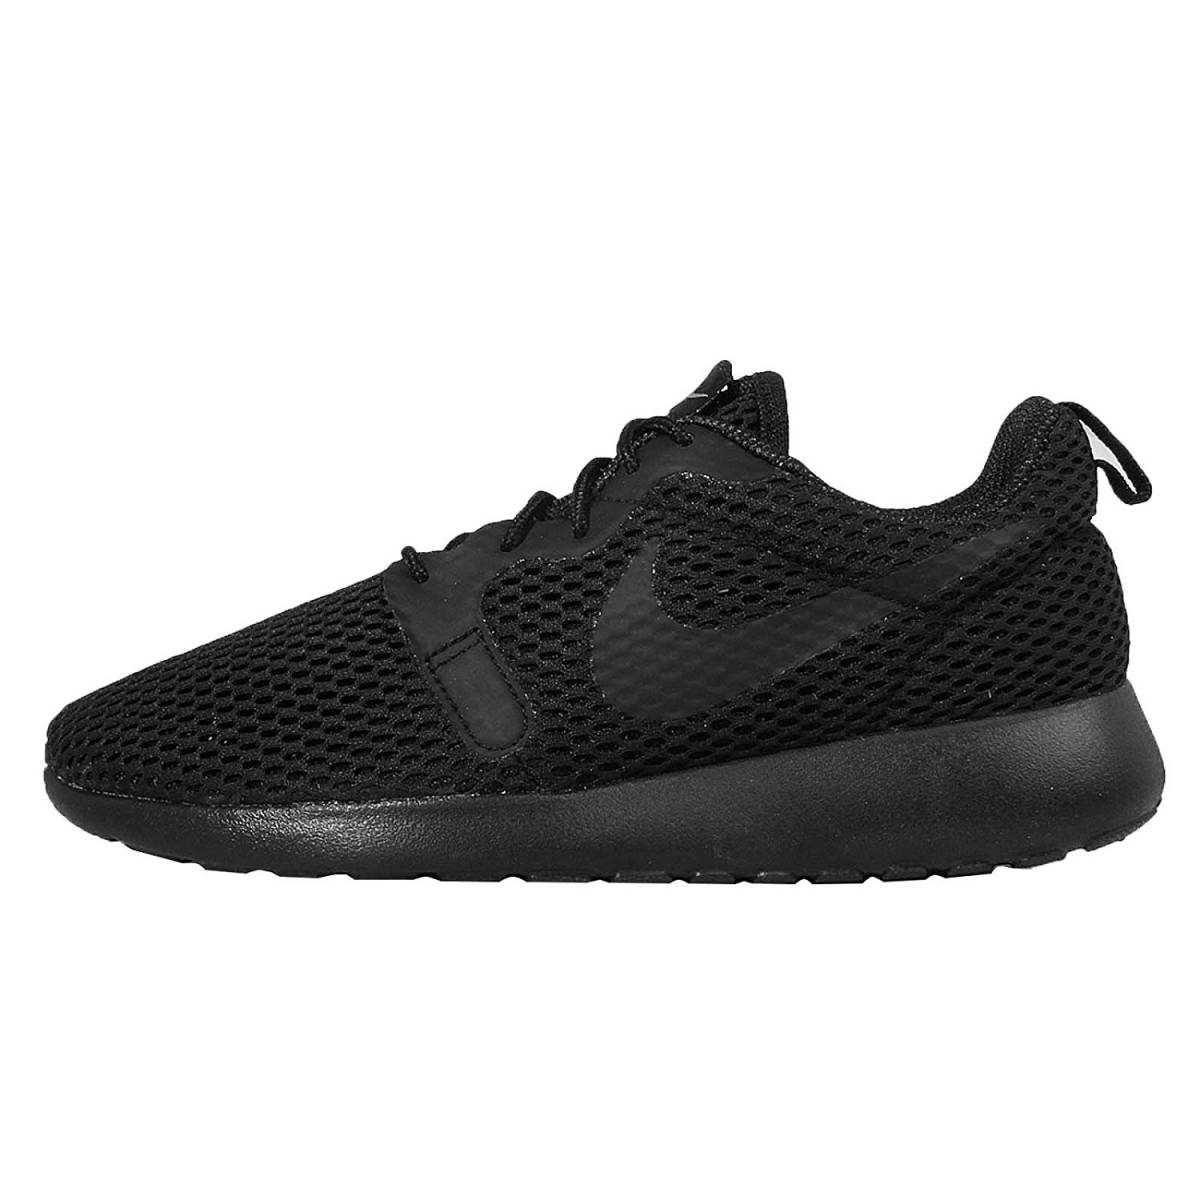 15f287251808 24cm  Nike wi men s low si one hyper b Lee zWMNS ROSHE ONE HYP BR black low  si one running shoes Jim exercise